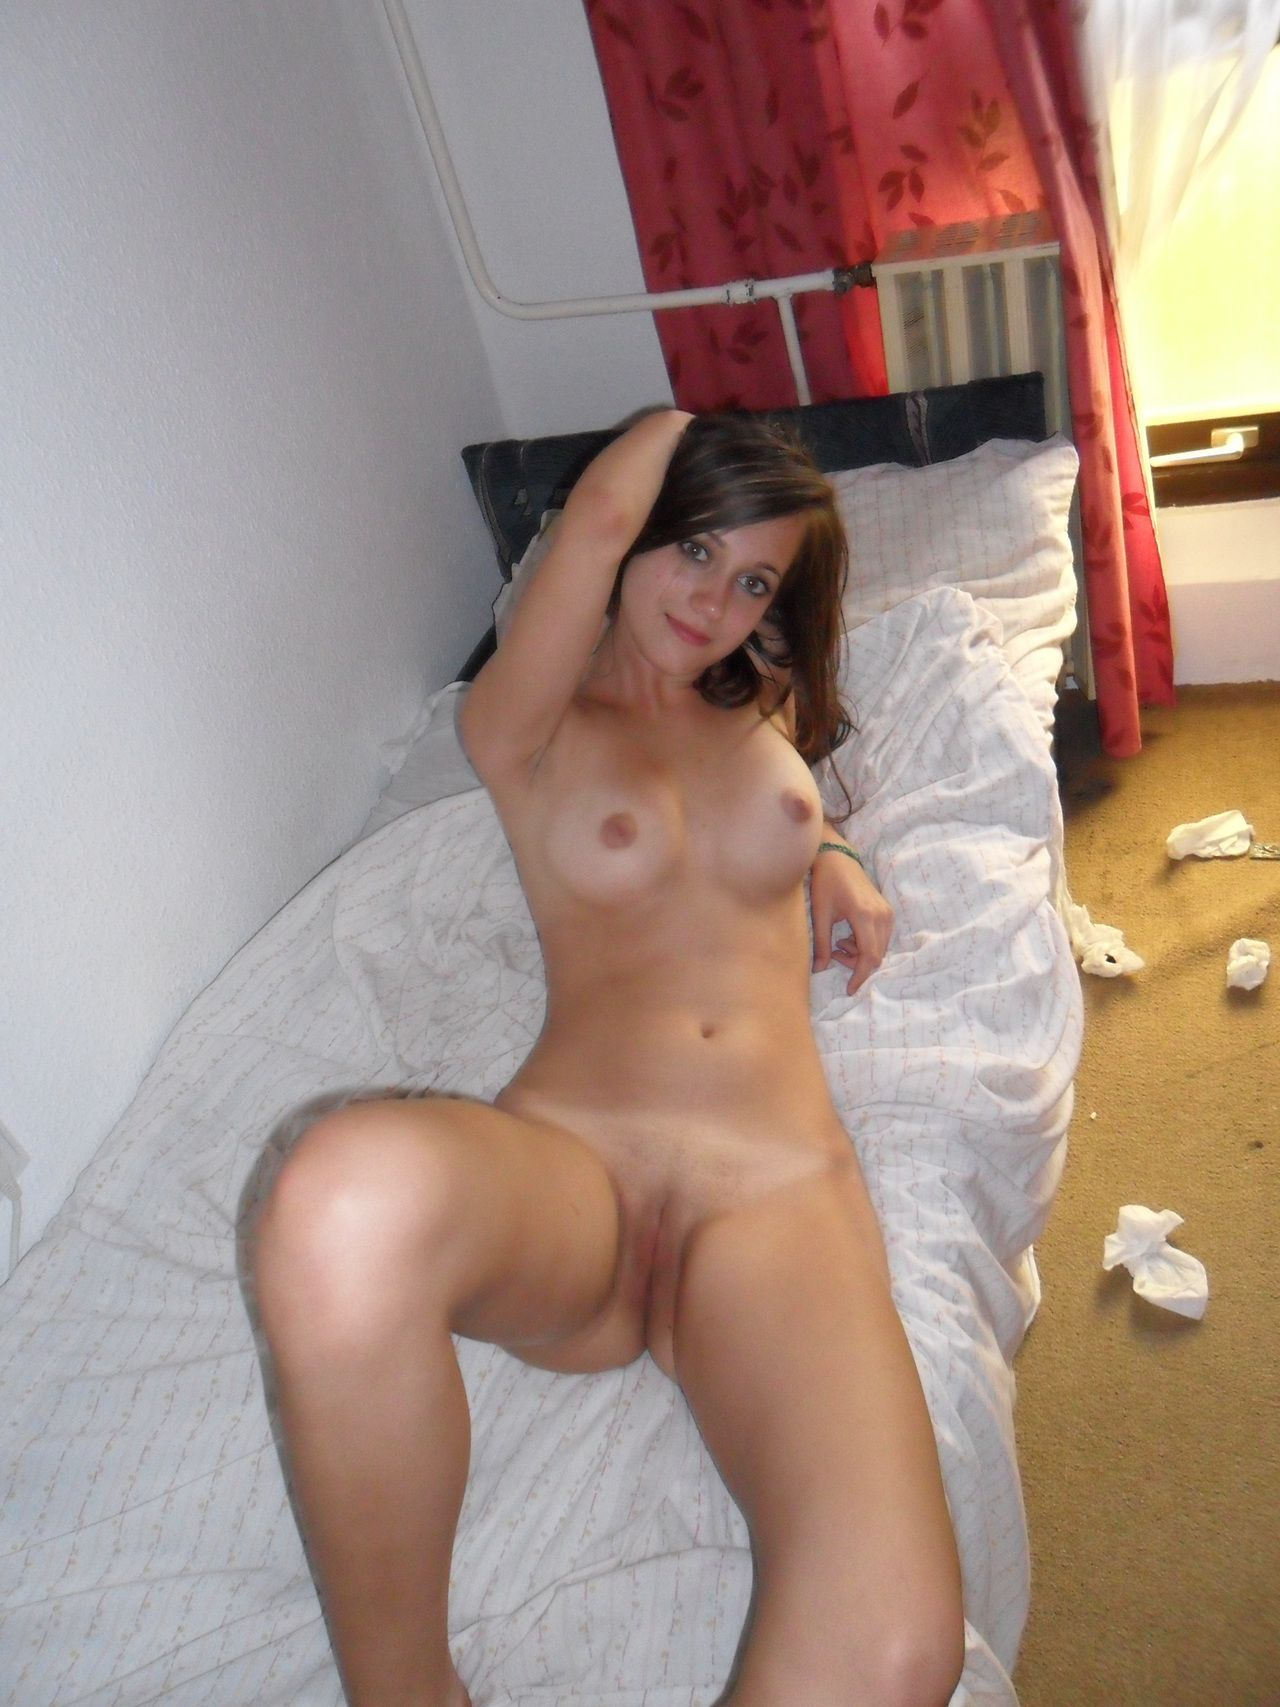 Hot nextdoor babe being banged 5